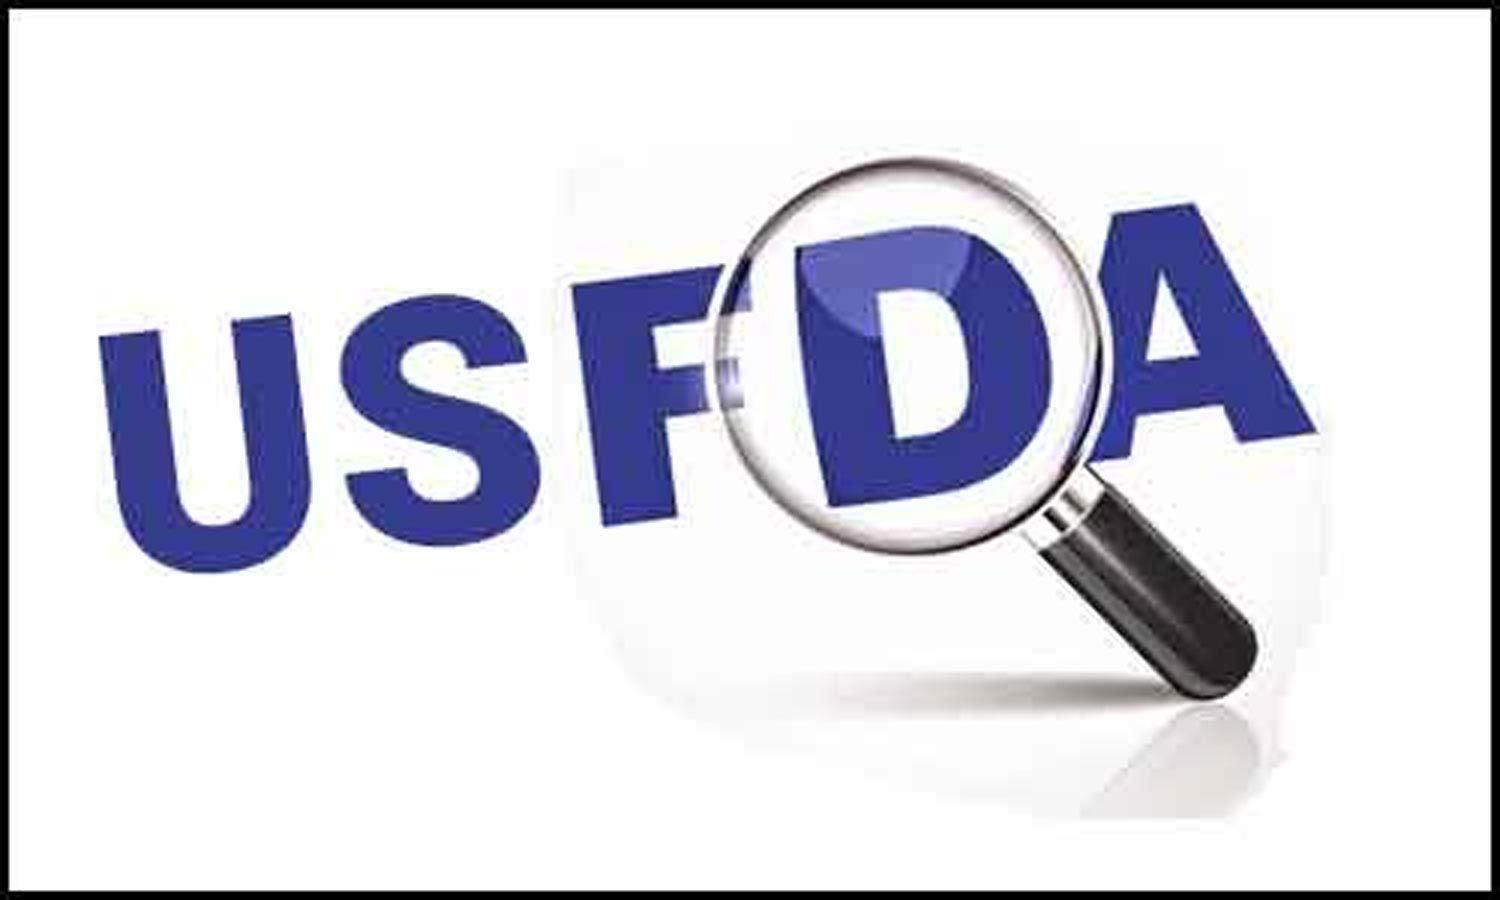 USFDA partially lifts import ban on Ipca Labs APIs of Chloroquine Phosphate and Hydroxychloroquine Sulphate